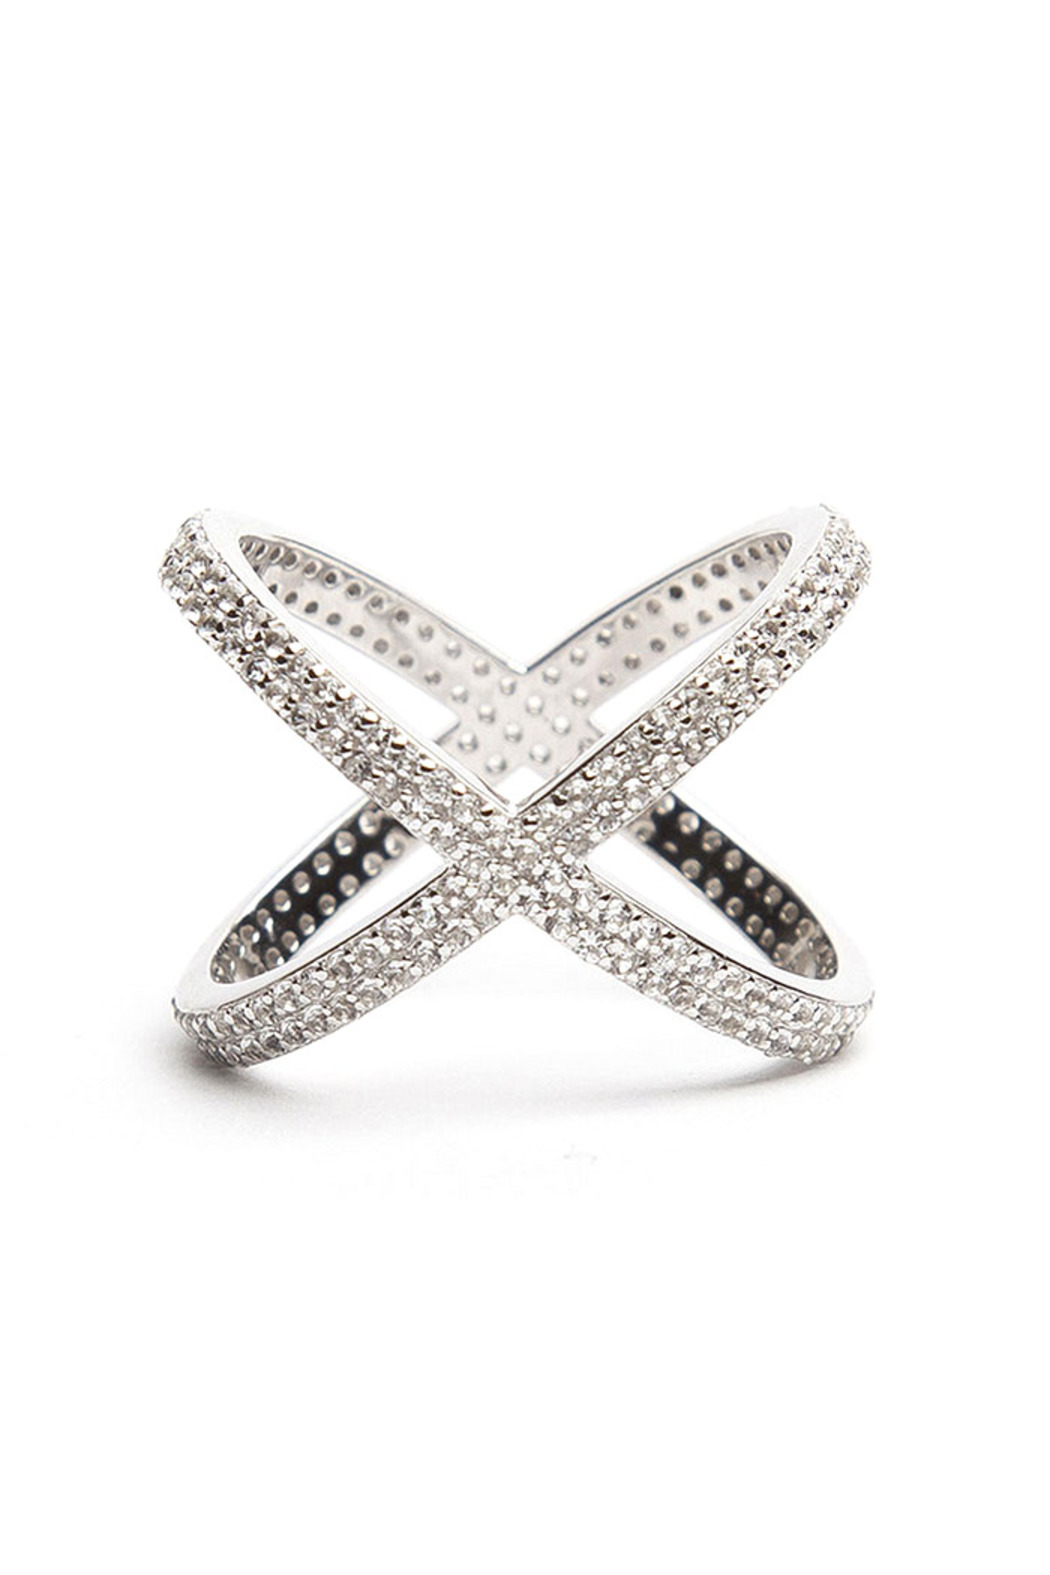 Alex Mika Double Criss Cross Ring From Brooklyn By Millo